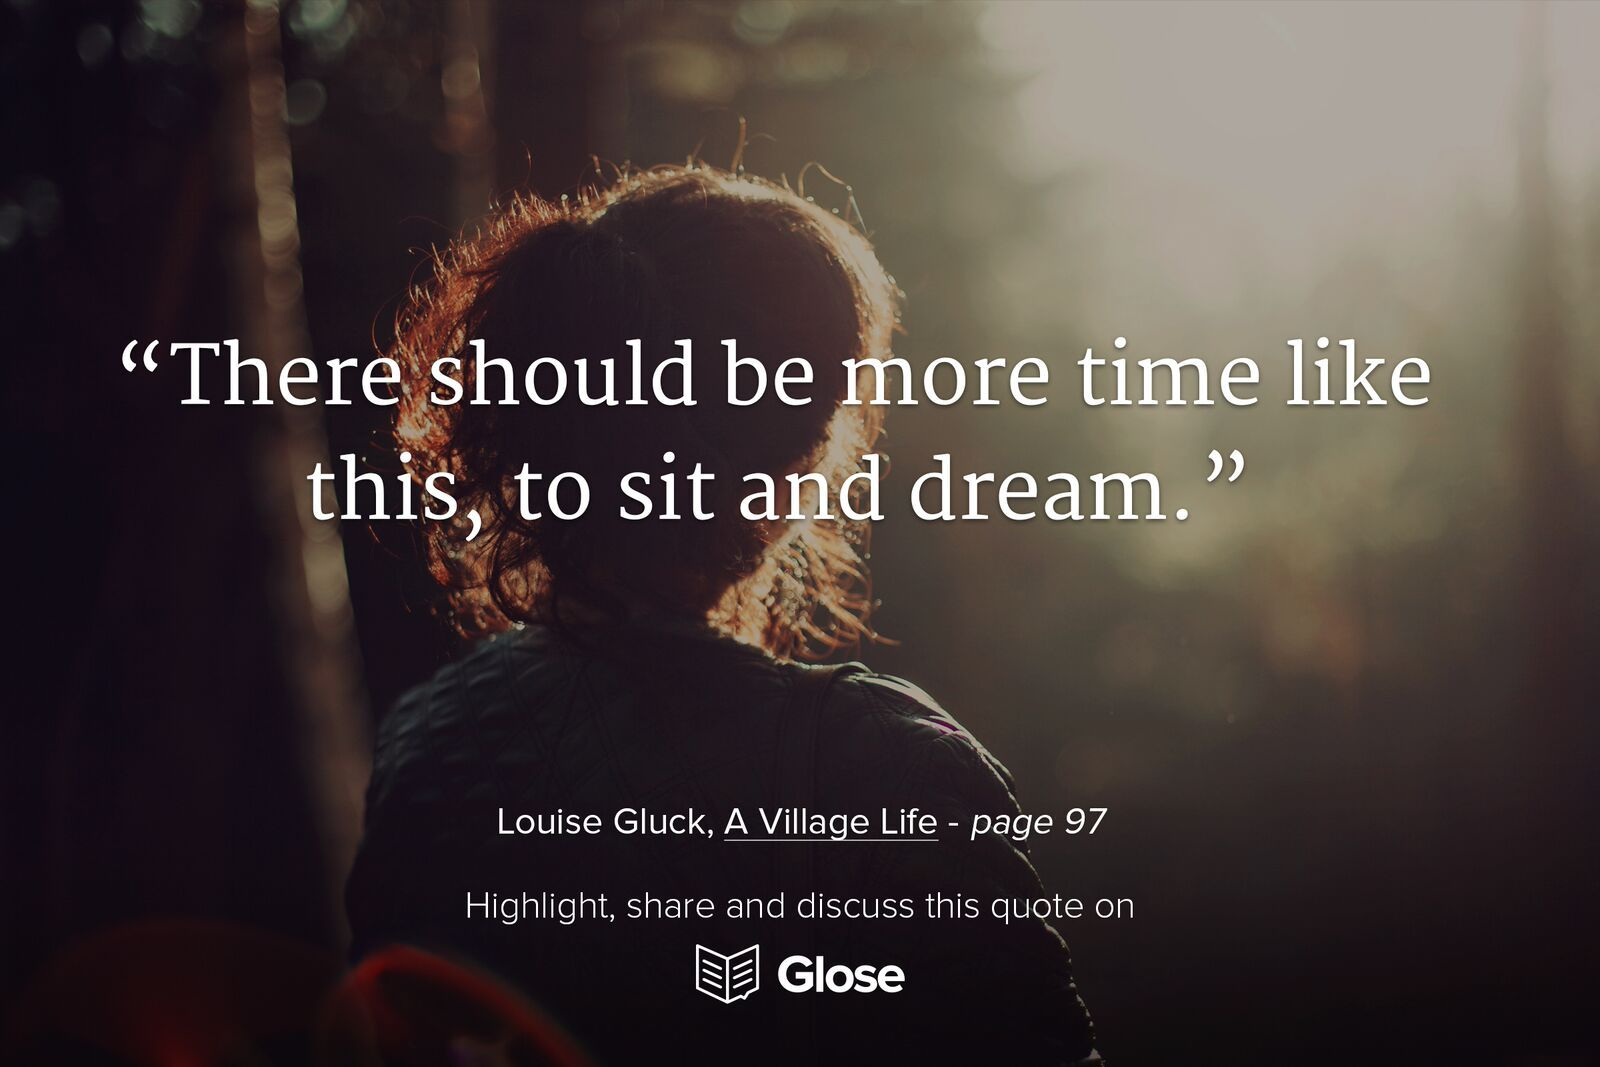 Louise Gluck, A Village Life  Highlight, share and discuss this